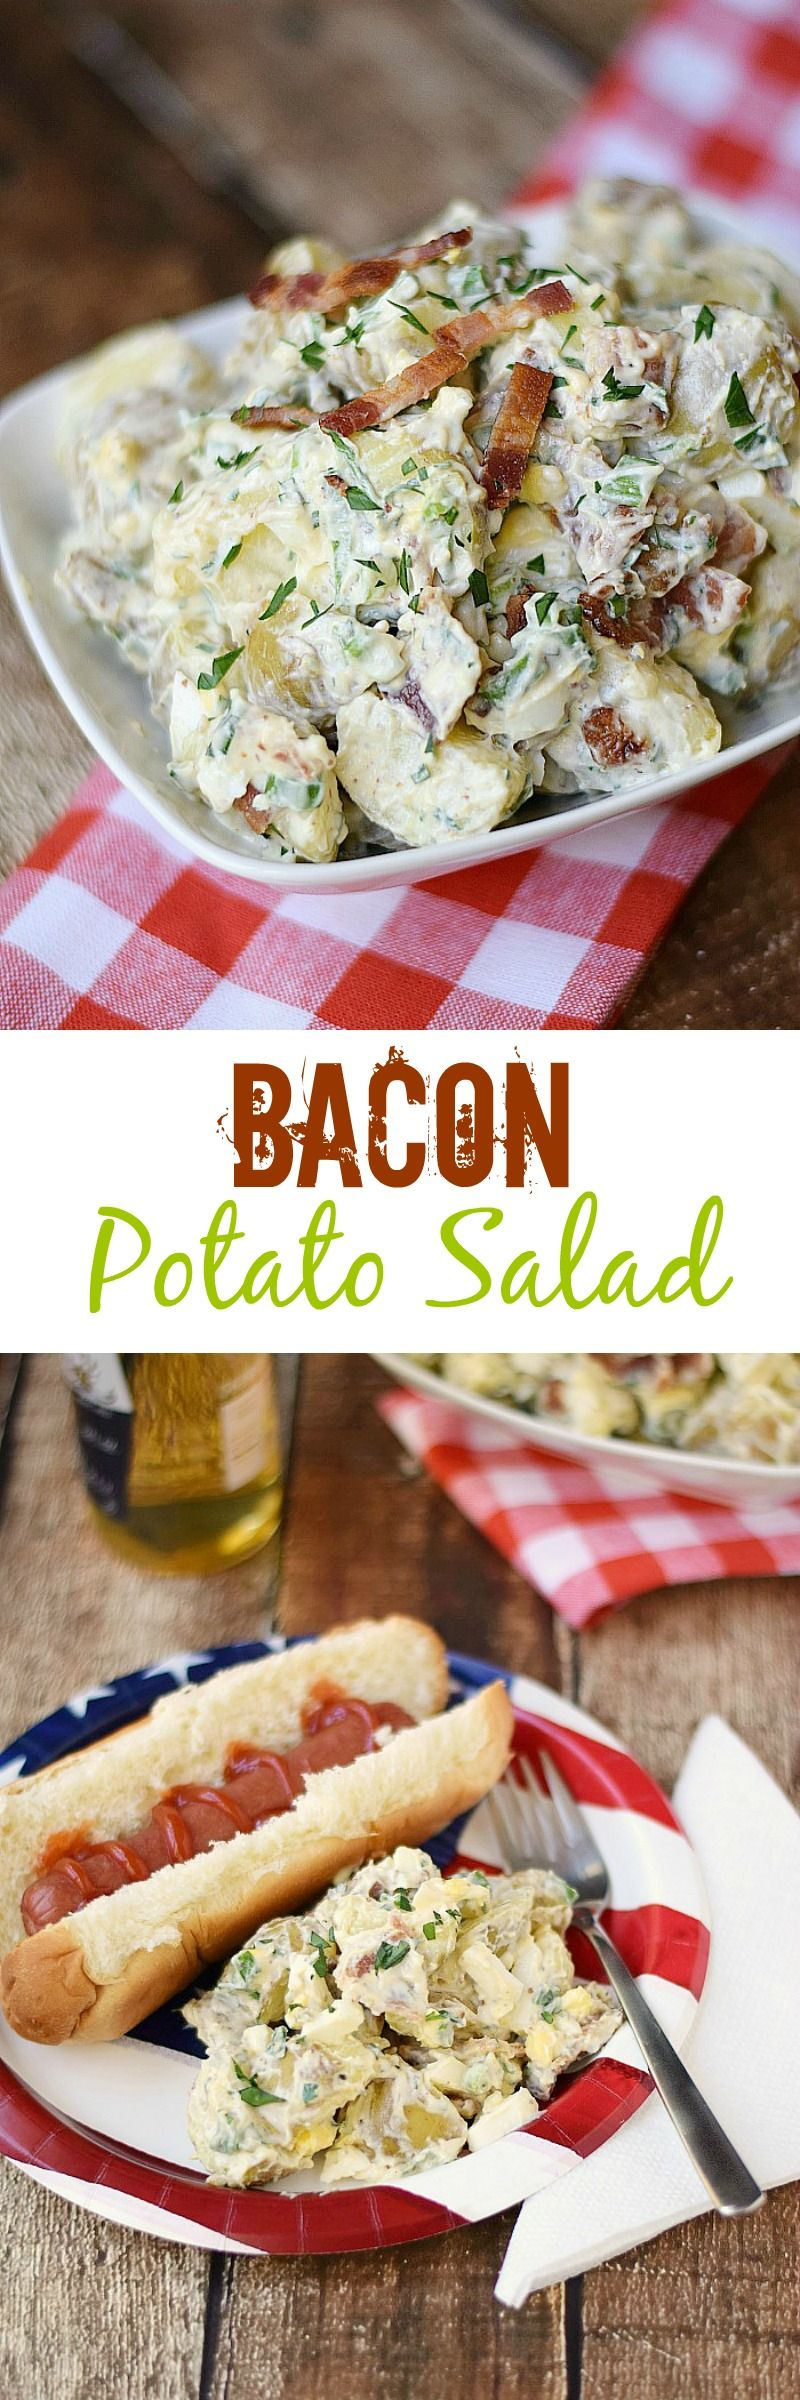 No picnic or potluck is complete without this delicious Bacon Potato Salad | cookingwithcurls.com